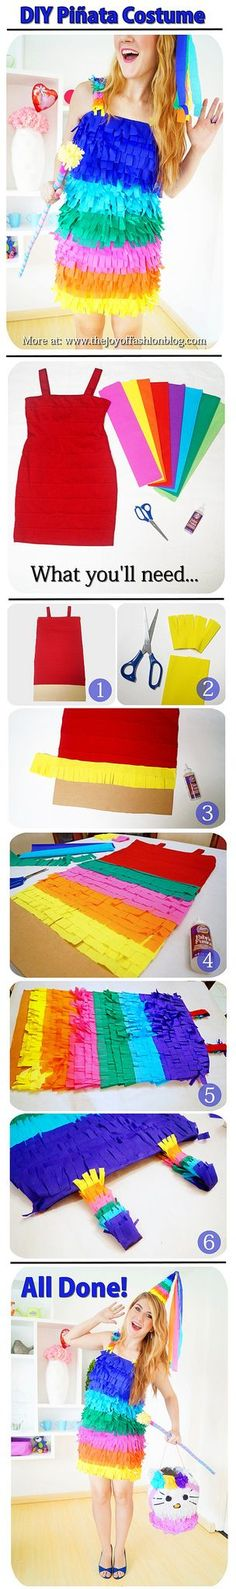 Easy Piñata Costume #halloween #costume #diy #craft